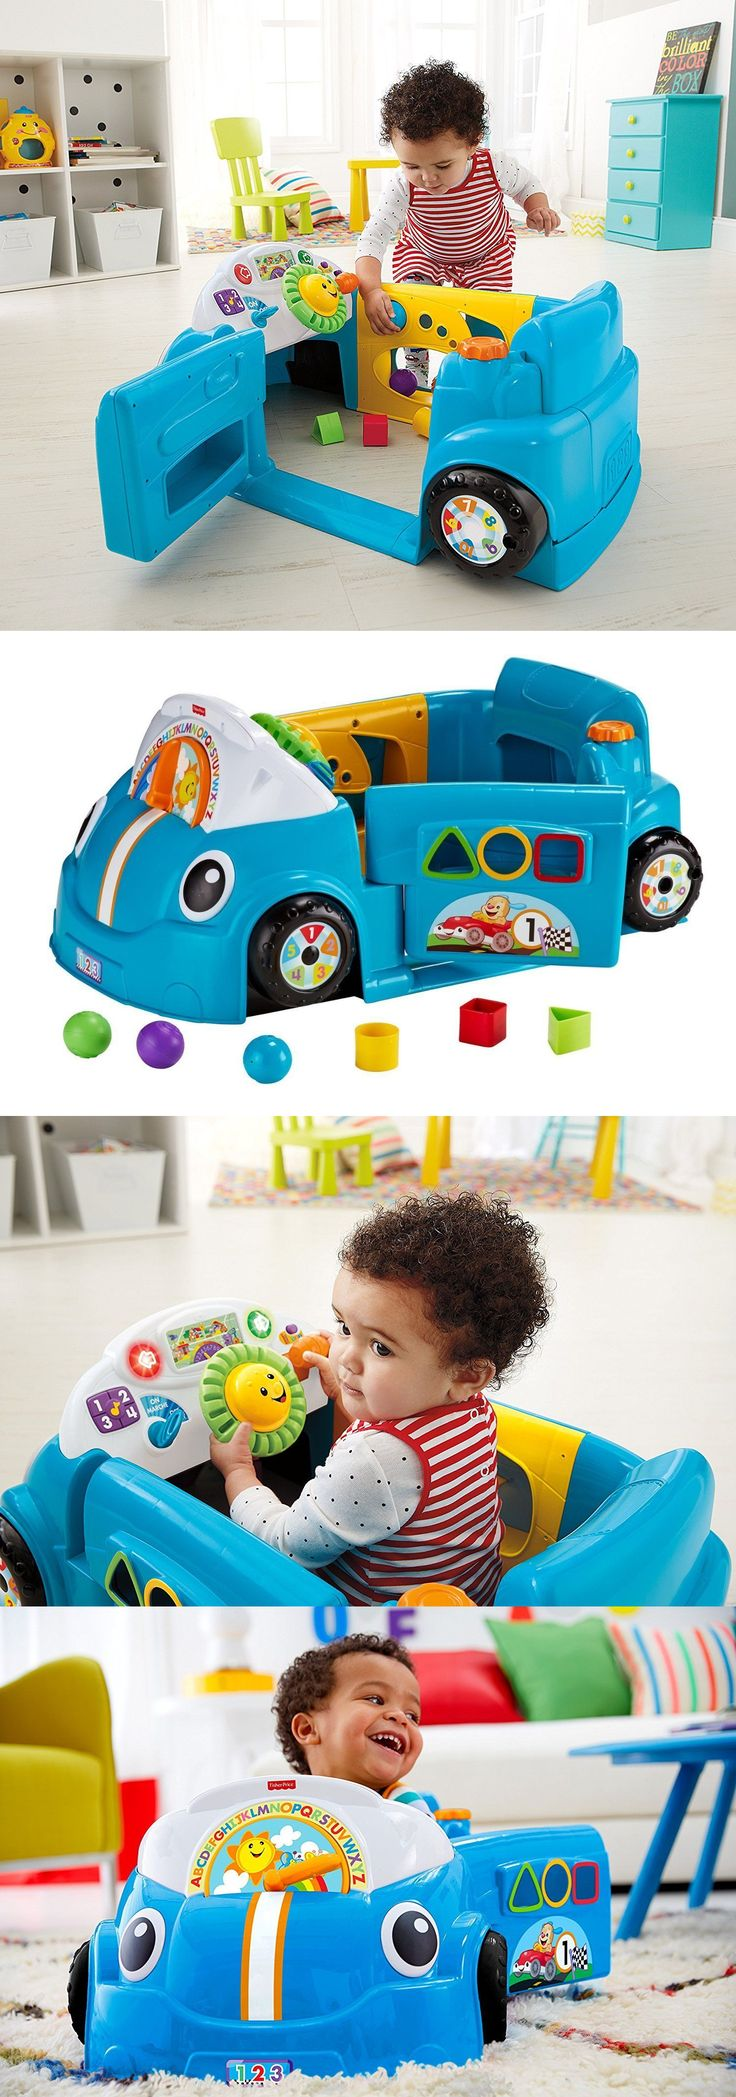 Toddler Educational Toys For Boys : Best top toddler toys ideas on pinterest